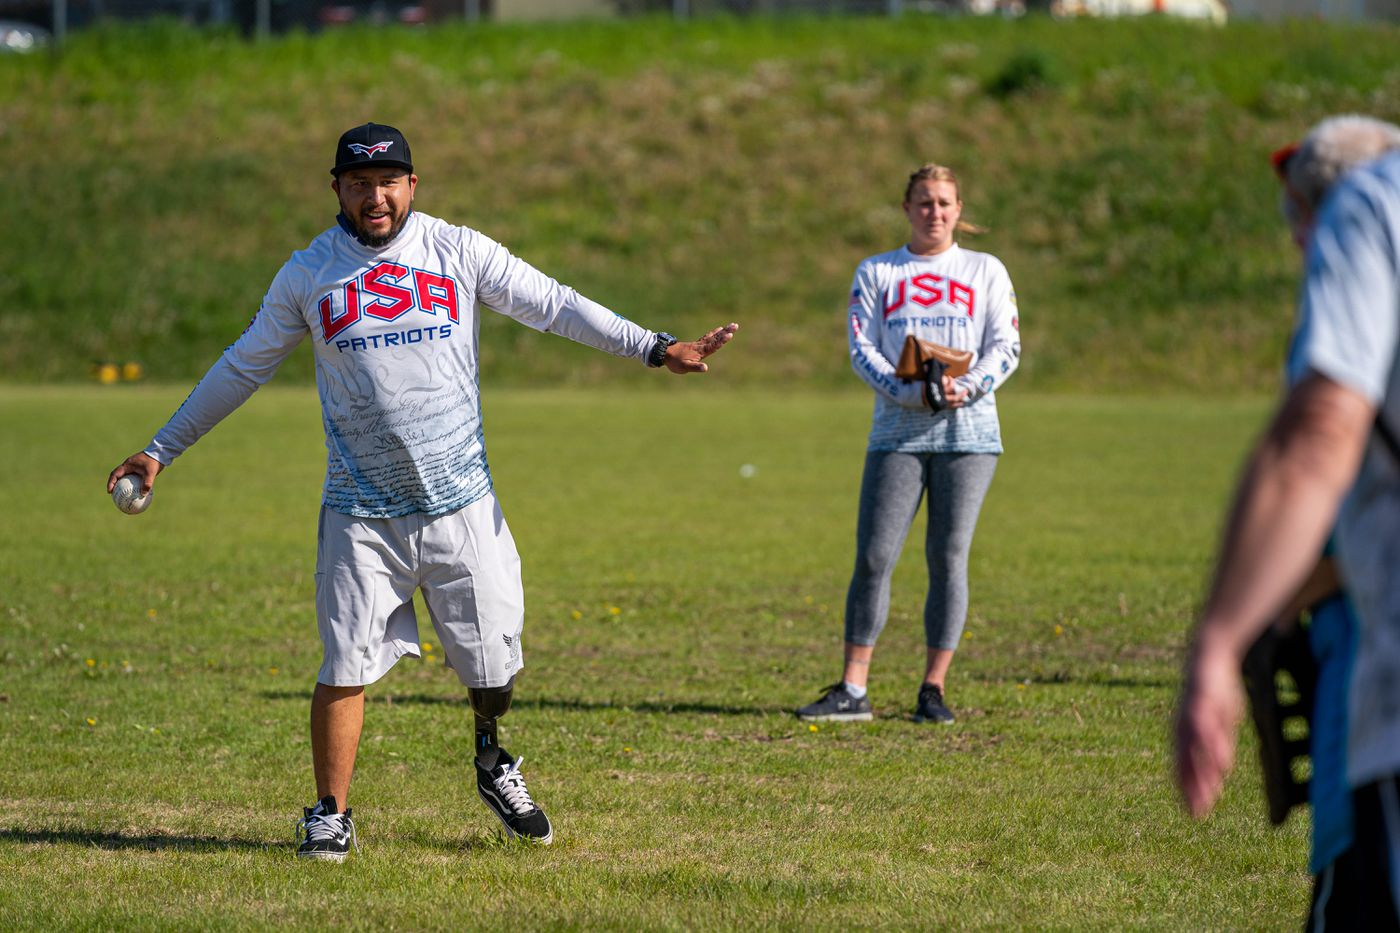 Saul Monroy, left, and Jessica Bosquez throw the ball to Special Olympics Alaska athletes at an event at Clark Middle School on Friday, June 11, 2021 in Anchorage. Monroy is a member of the USA Patriots softball team, and Bosquez is the team physical therapist. (Loren Holmes / ADN)